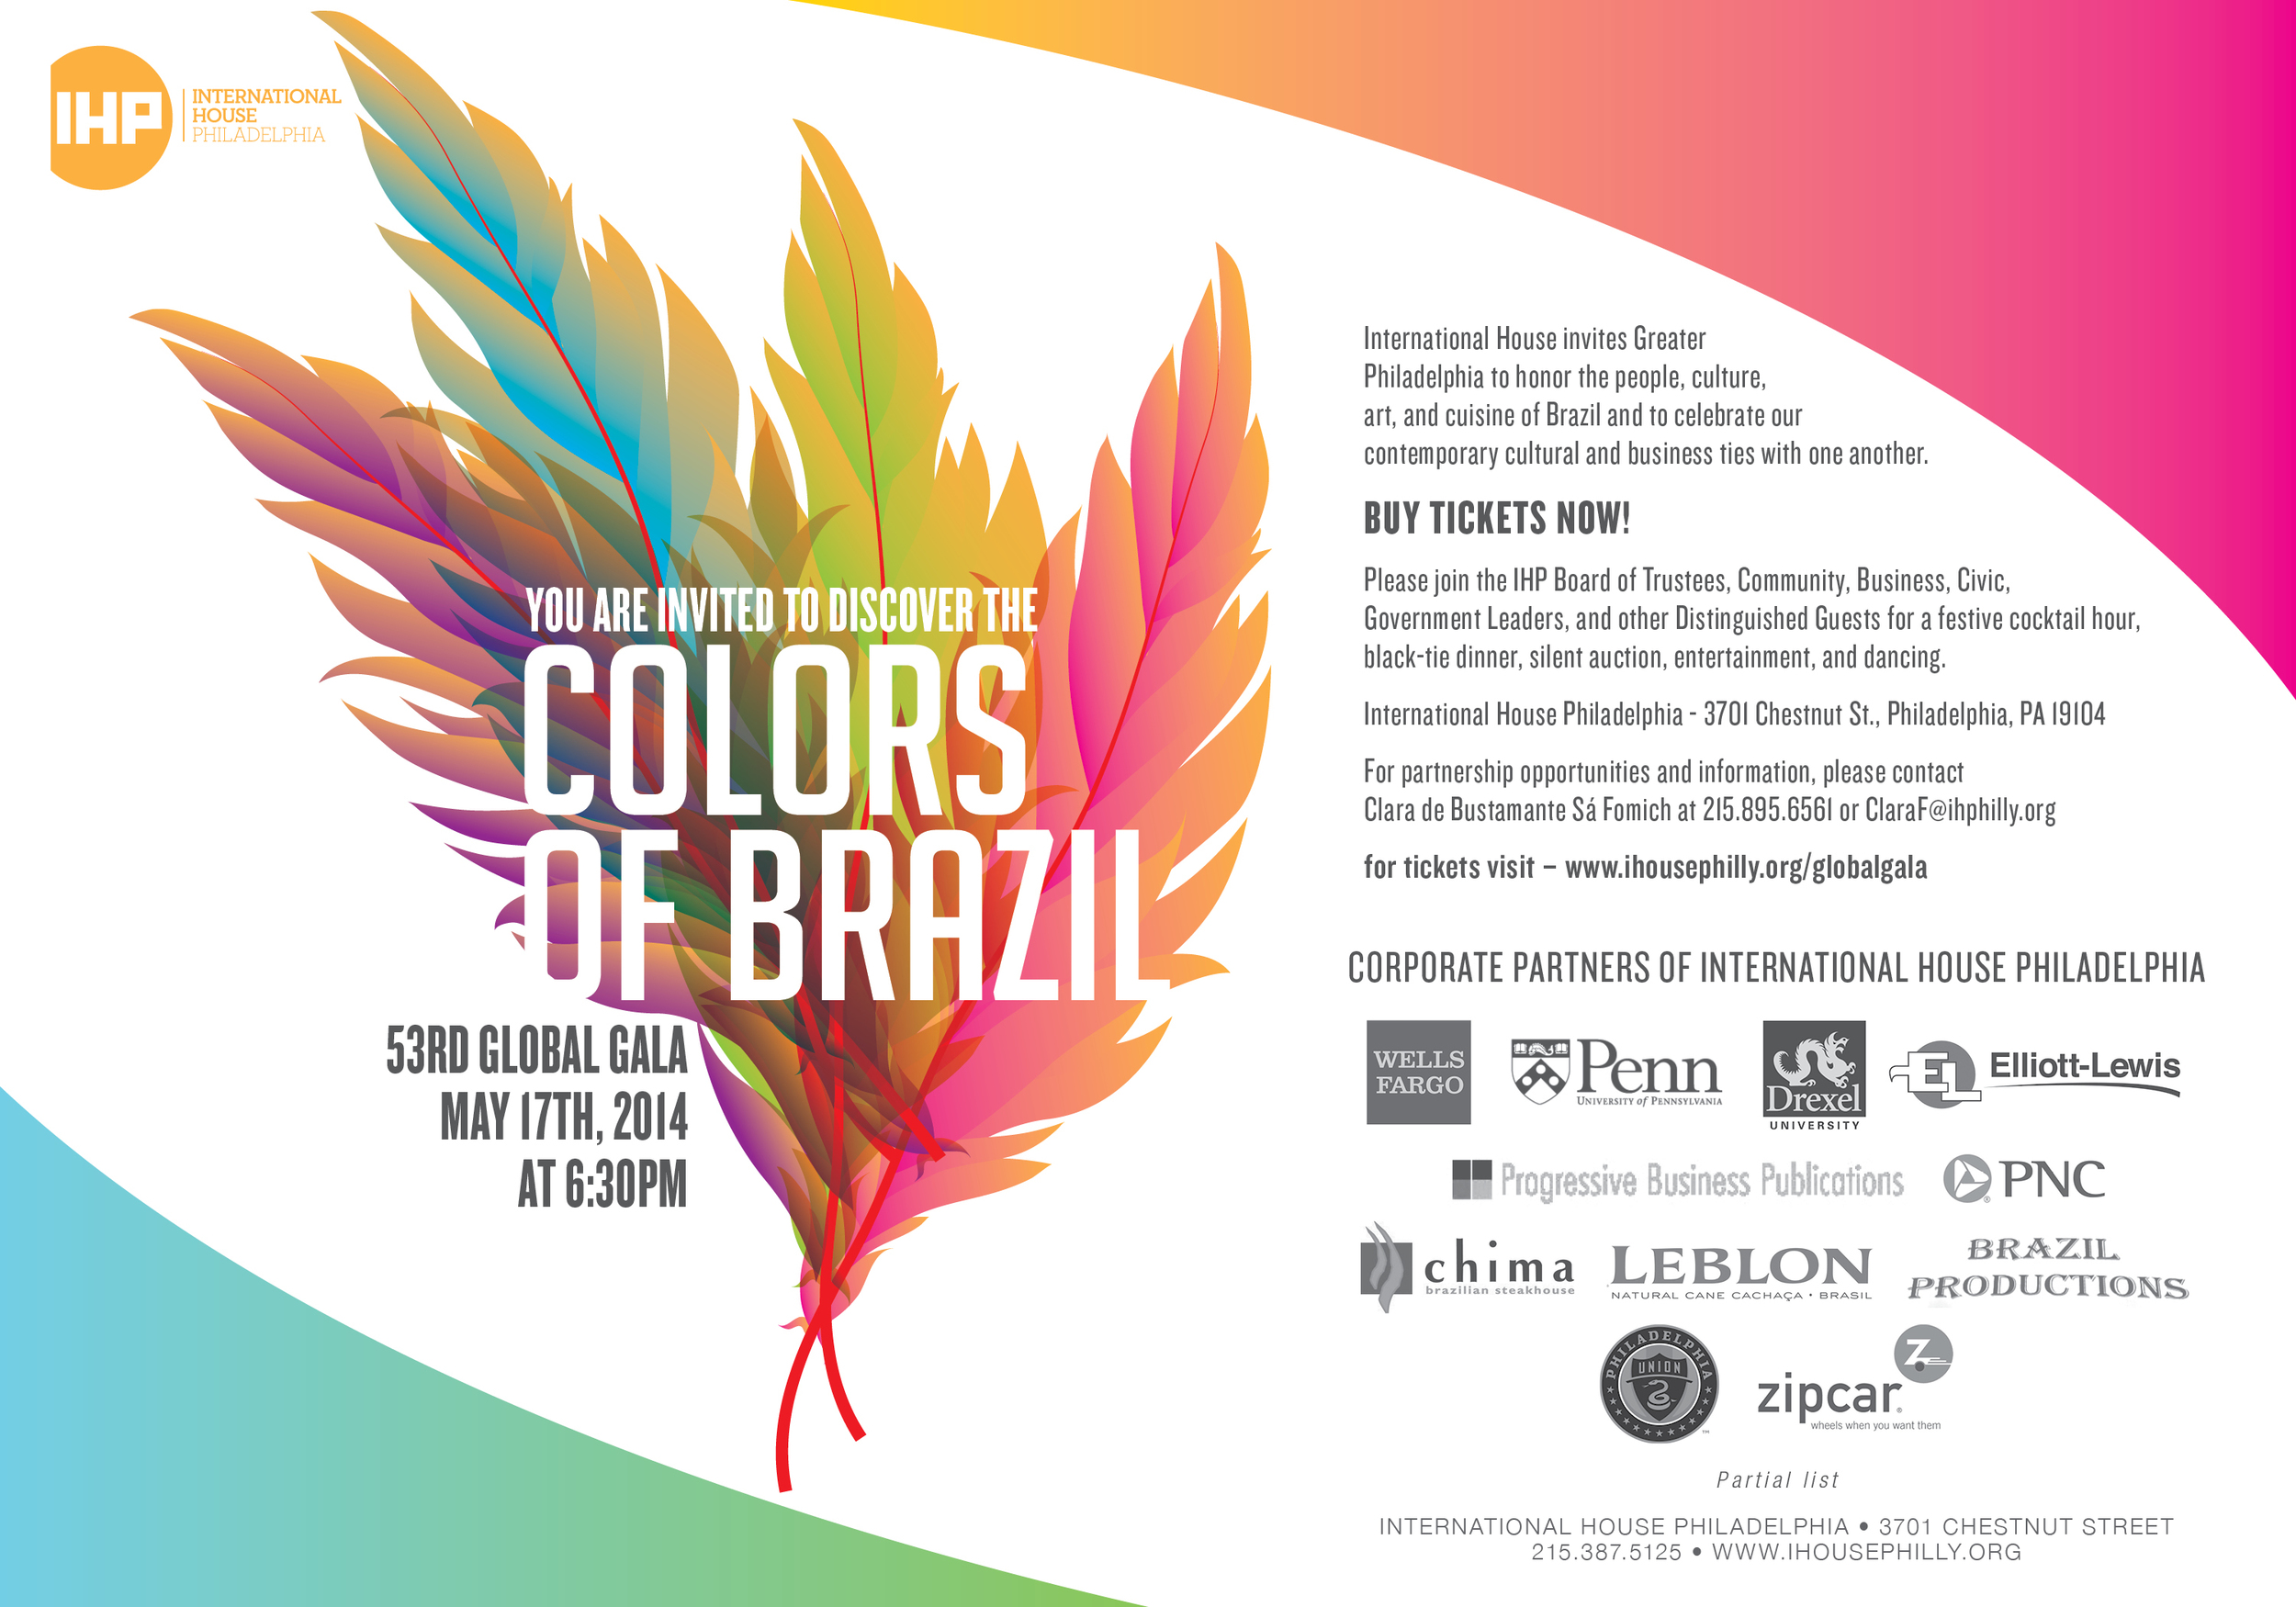 International House Philadelphia, Global Gala, Colors of Brazil, Black-tie, fundraiser, benefit